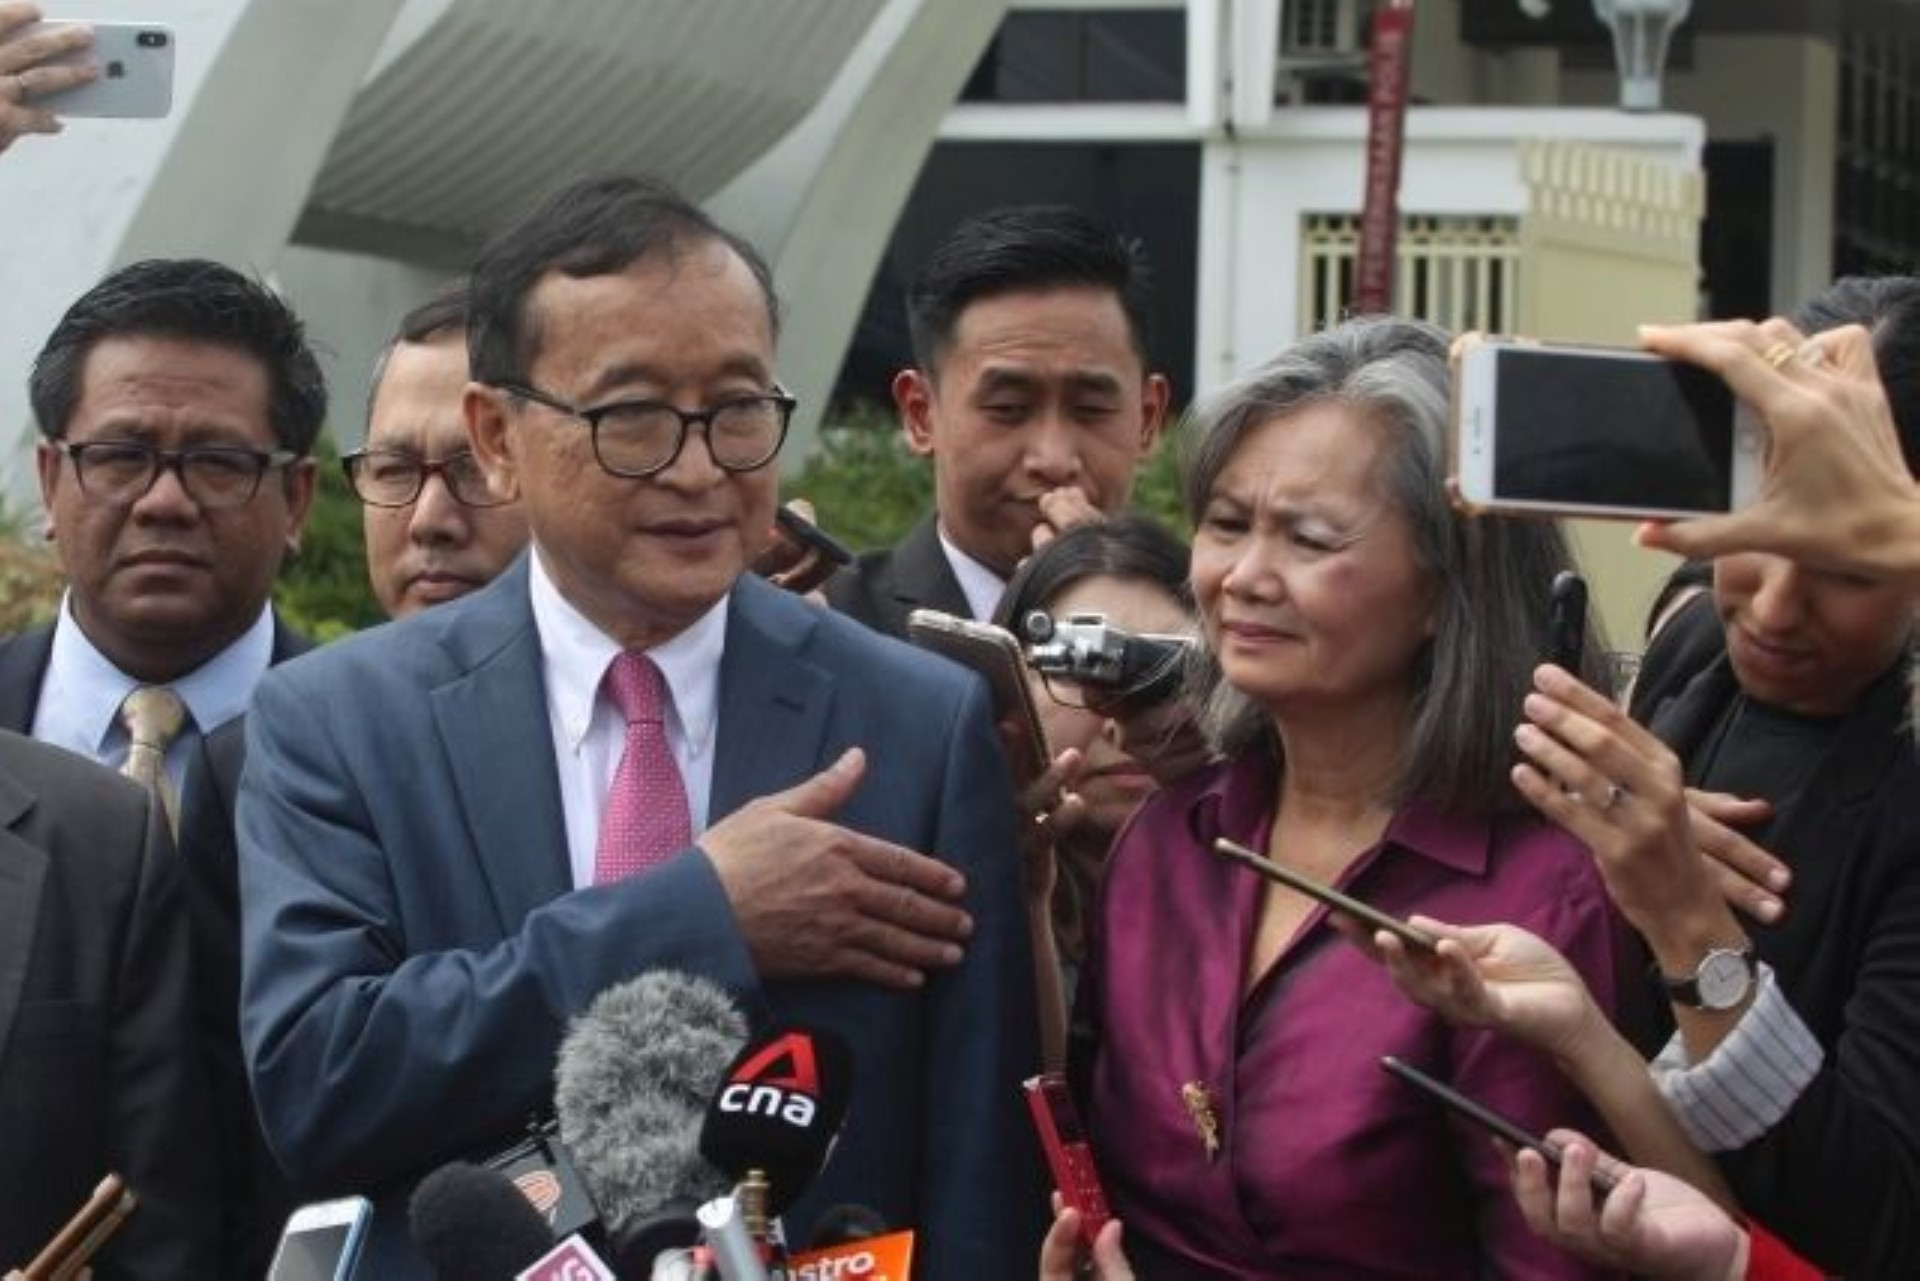 Cambodian National Rescue Party president Sam Rainsy and party vice president Mu Sochua speak to reporters after their visit to Parliament on Nov 12, 2019. - KAMARUL ARIFFIN/The Star